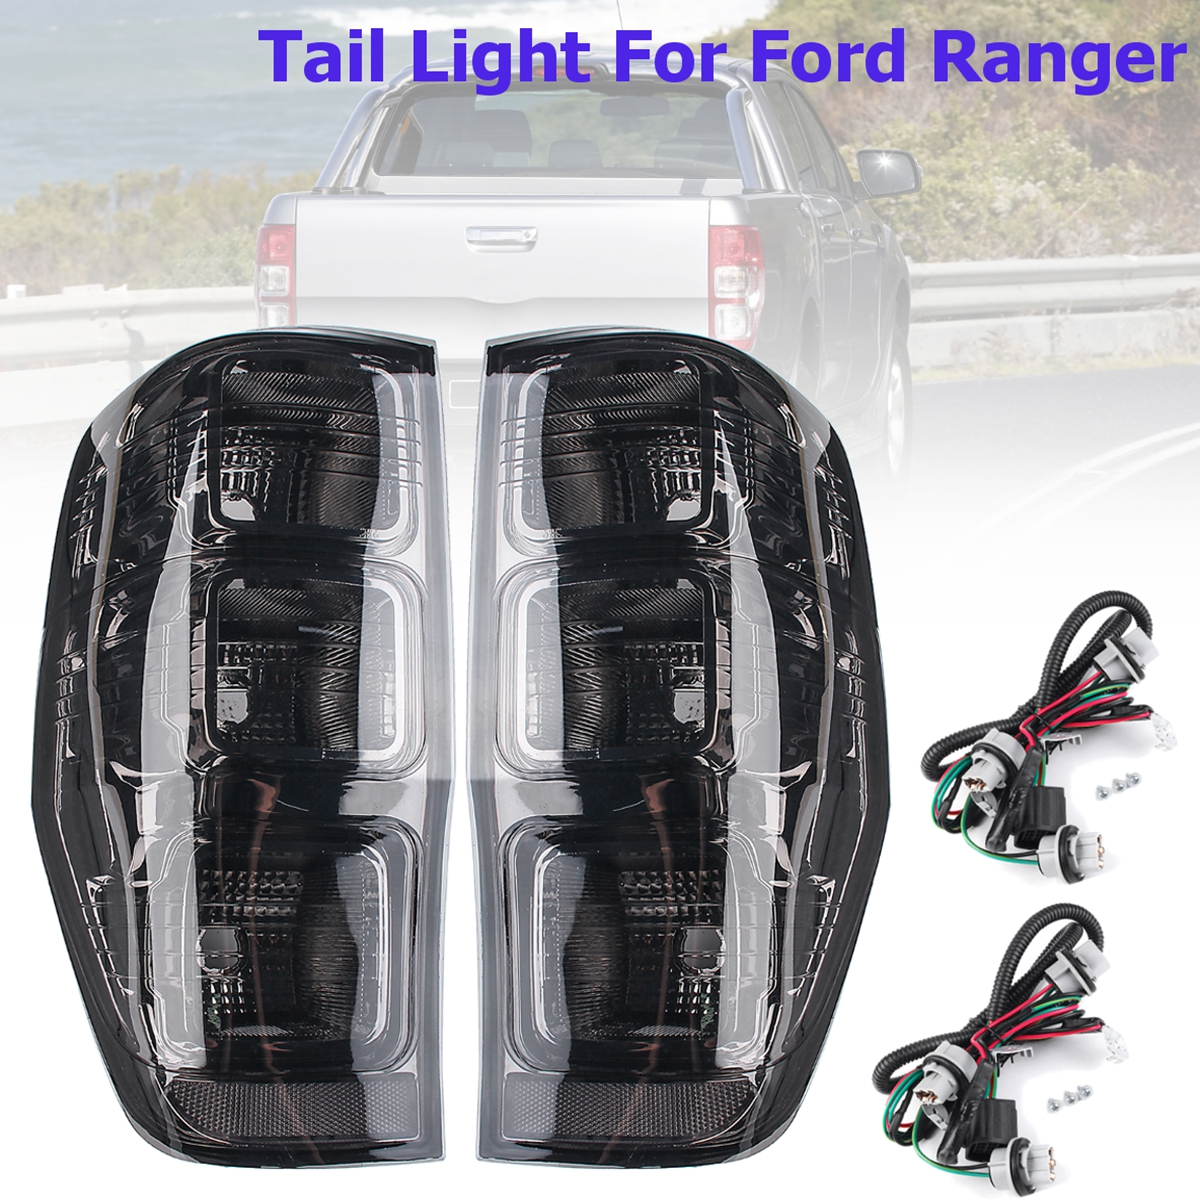 цена на Rear Left/Right Tail Smoked Rear Tail Lights Lamp for Ford Ranger PX T6 MK1 MK2 WildTrak XLT XL XLS